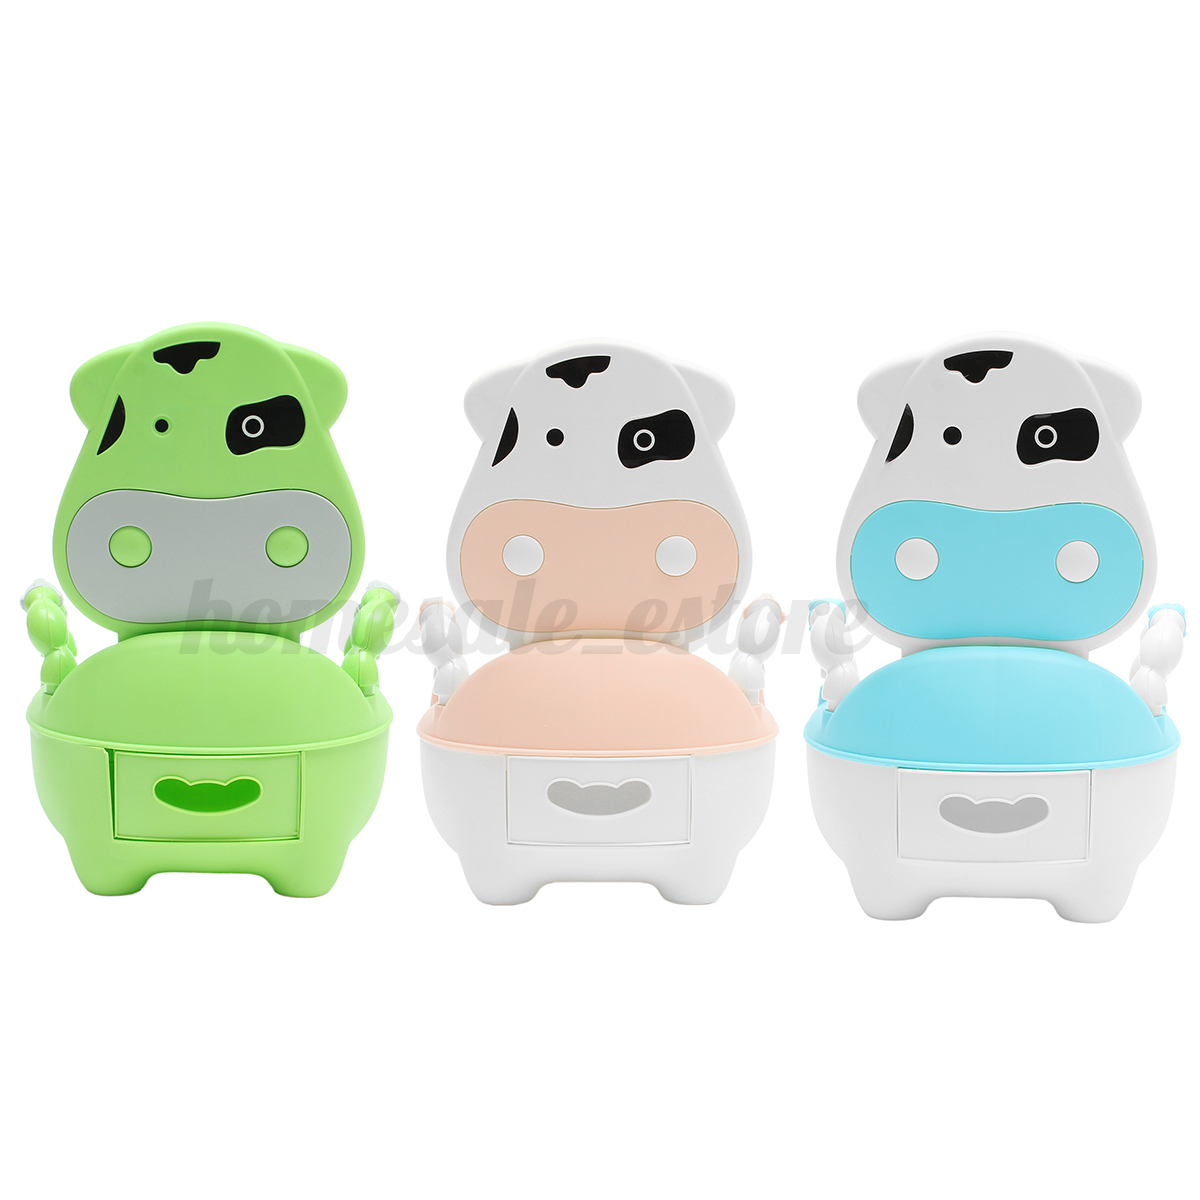 Details about Portable Baby Training Toilet Seat Potty Chair Toddler Children Kids Pee Urinal